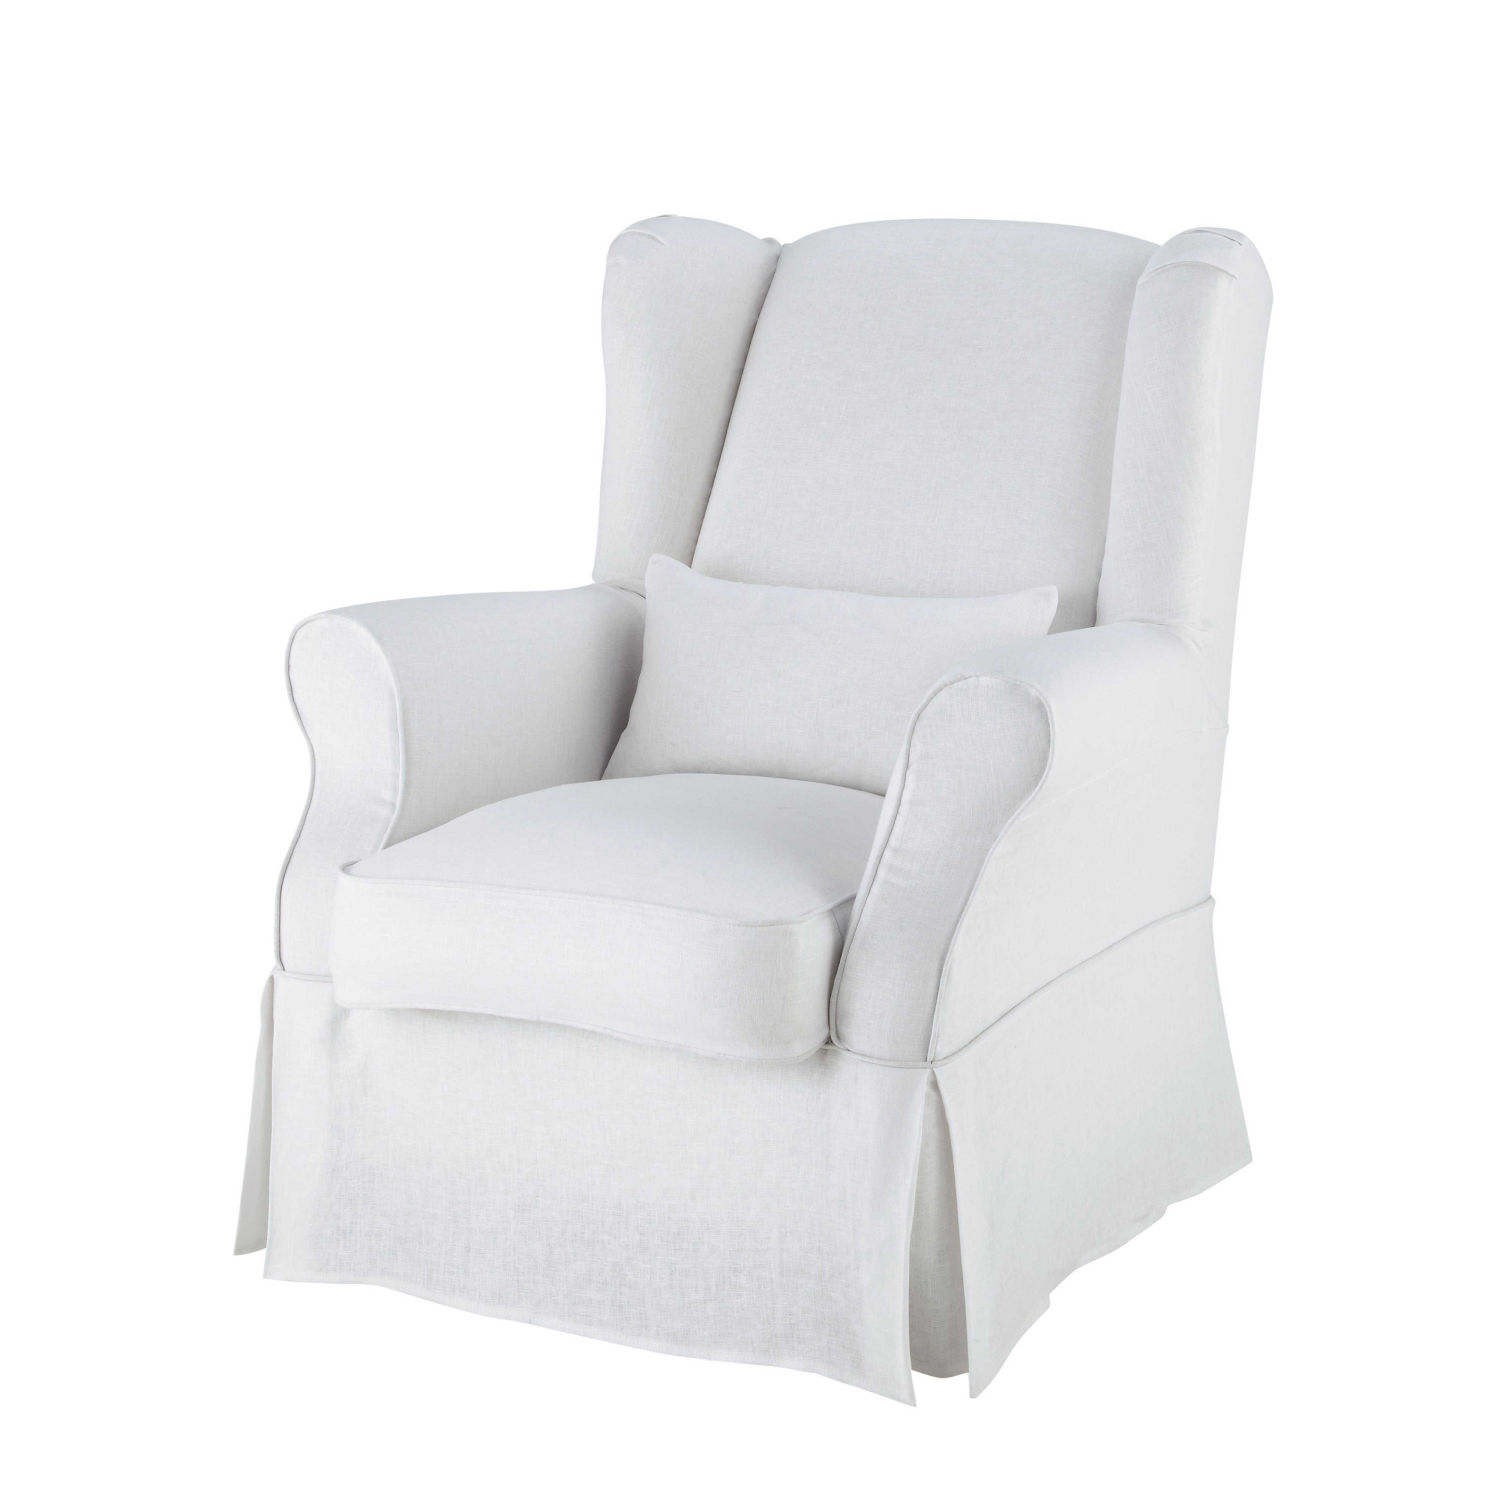 white armchair cover where to buy chair covers for metal folding chairs linen in maisons du monde